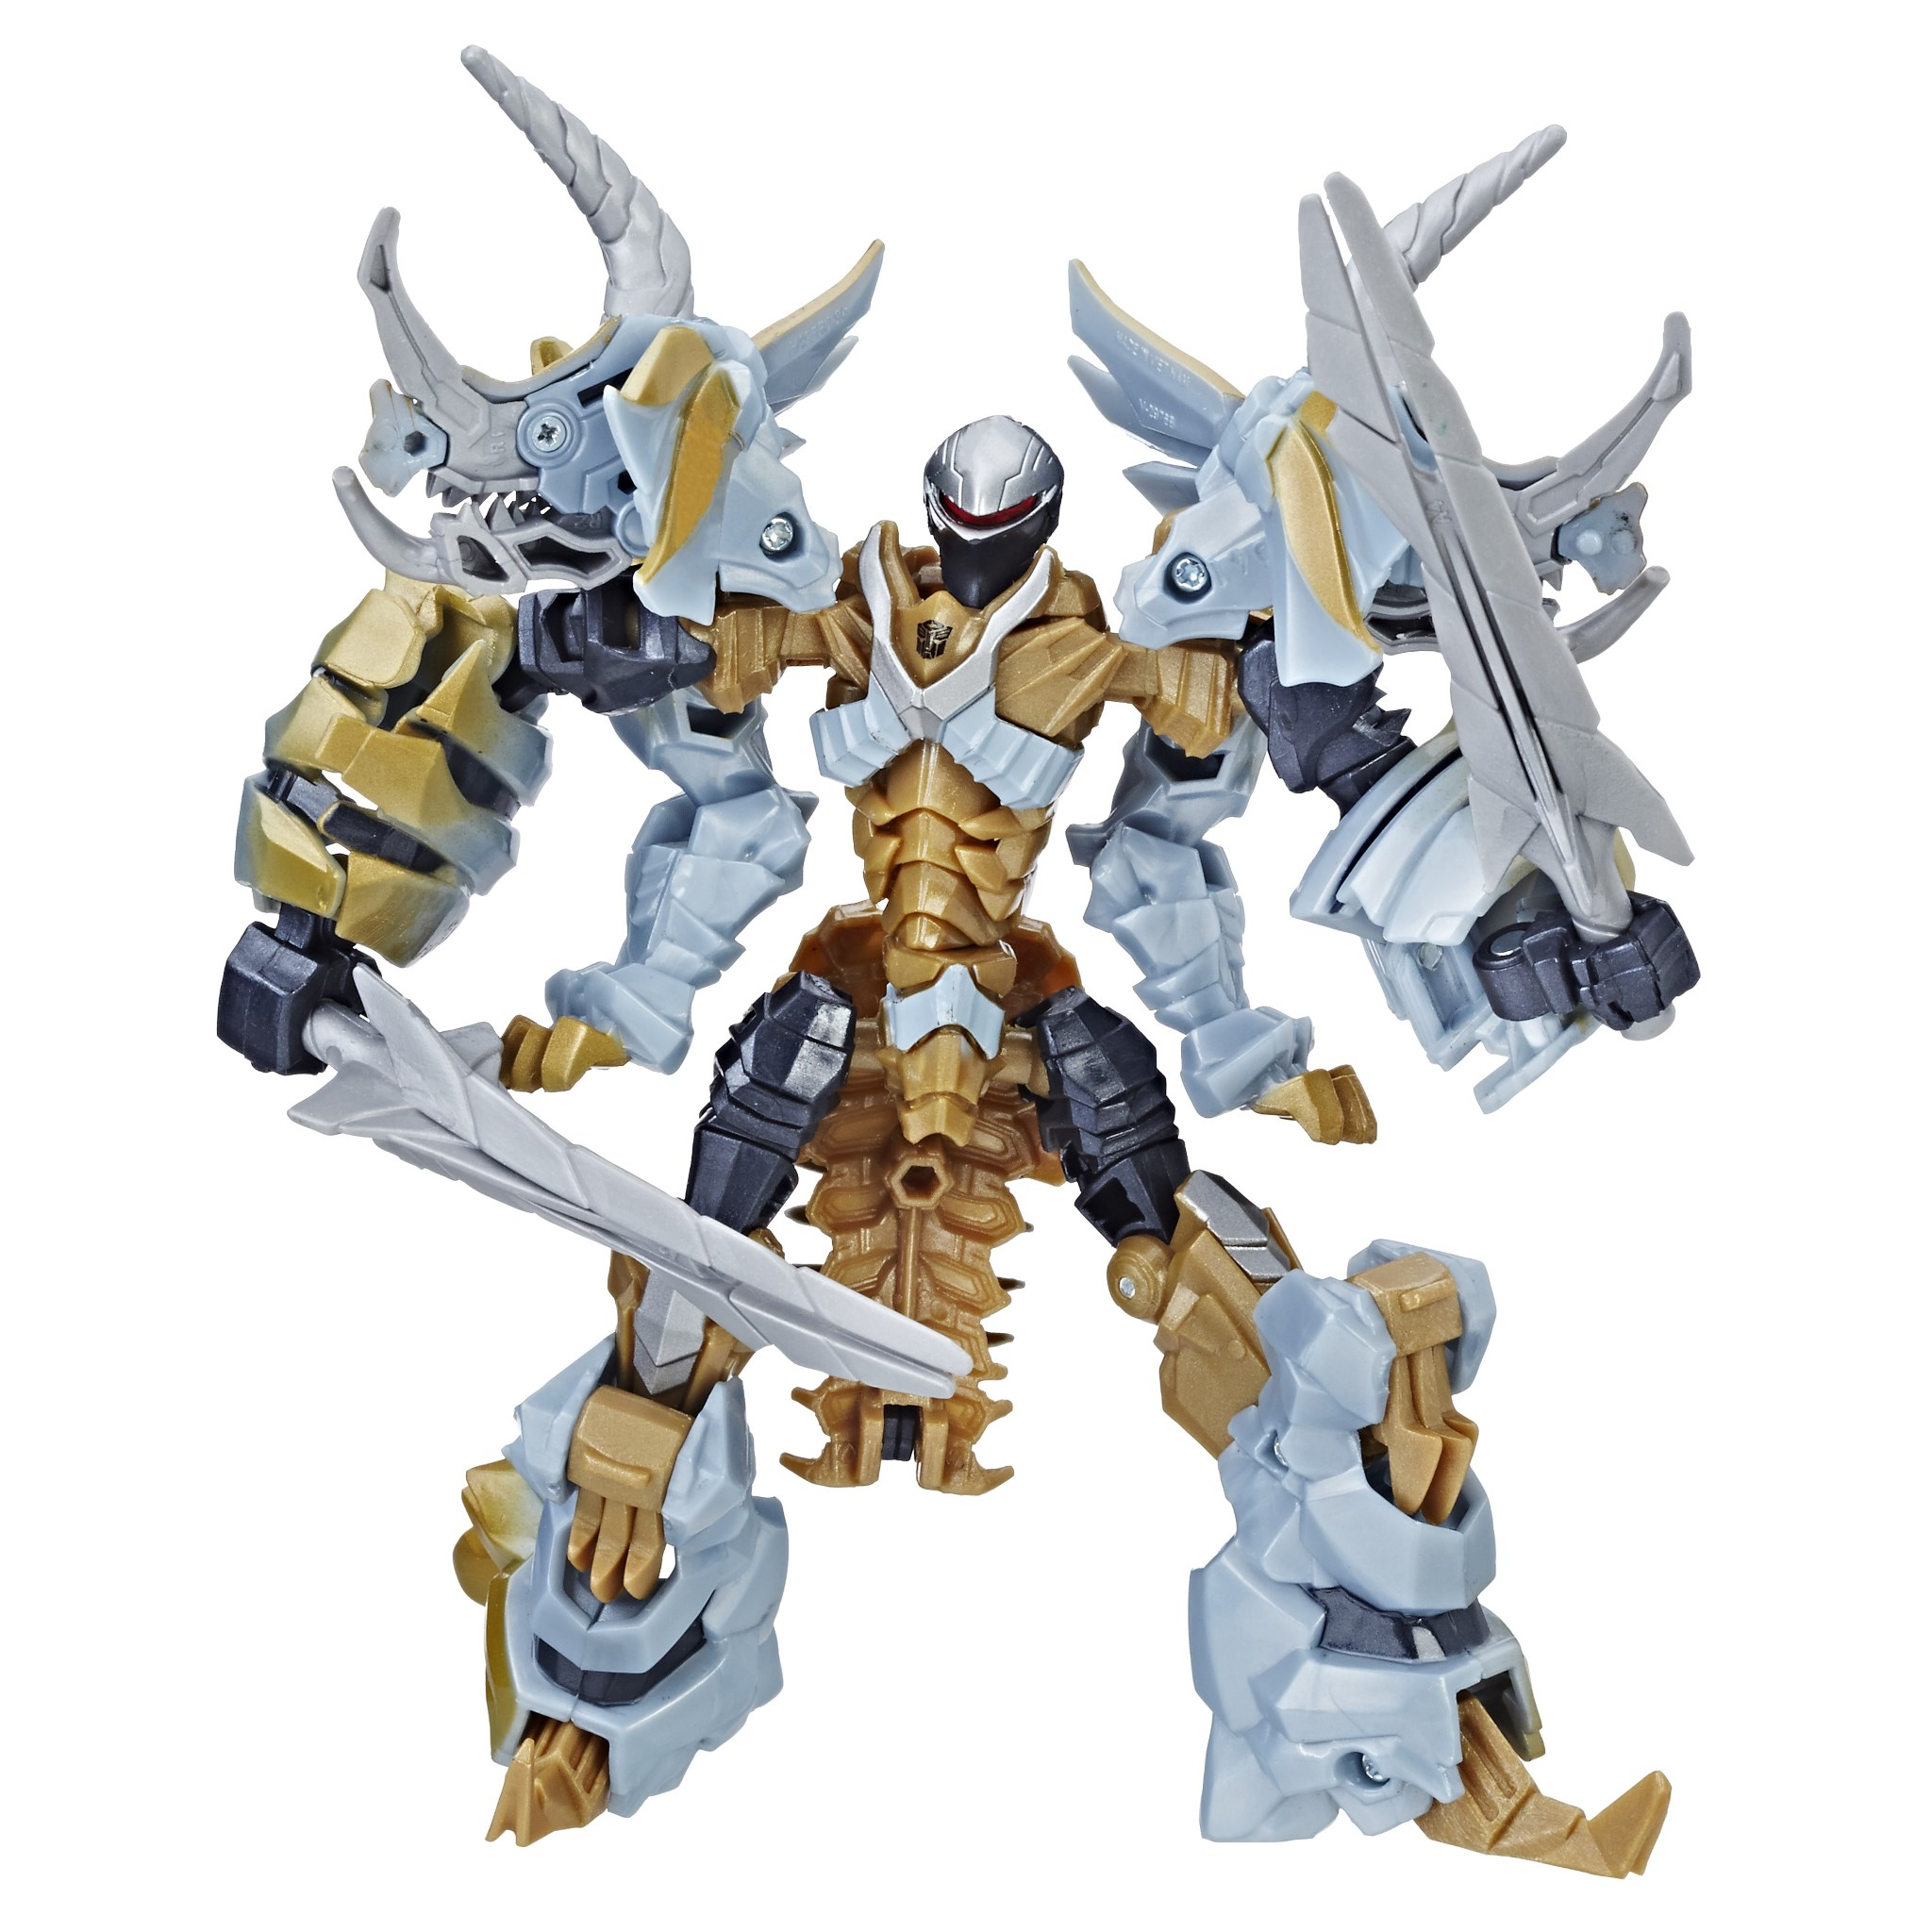 toys r us remote control car with Toy Fair 2017 Transformers Last Knight Premier Series Official Images 333645 on Ferngesteuertes Auto together with A 52114594 in addition Green Tree Frog Soft Toy Stuffed Plush Animal 13884665 besides New Bright 1 16 Remote Control Sports Car Assorted moreover China Remote Control Plane 178 YC26.